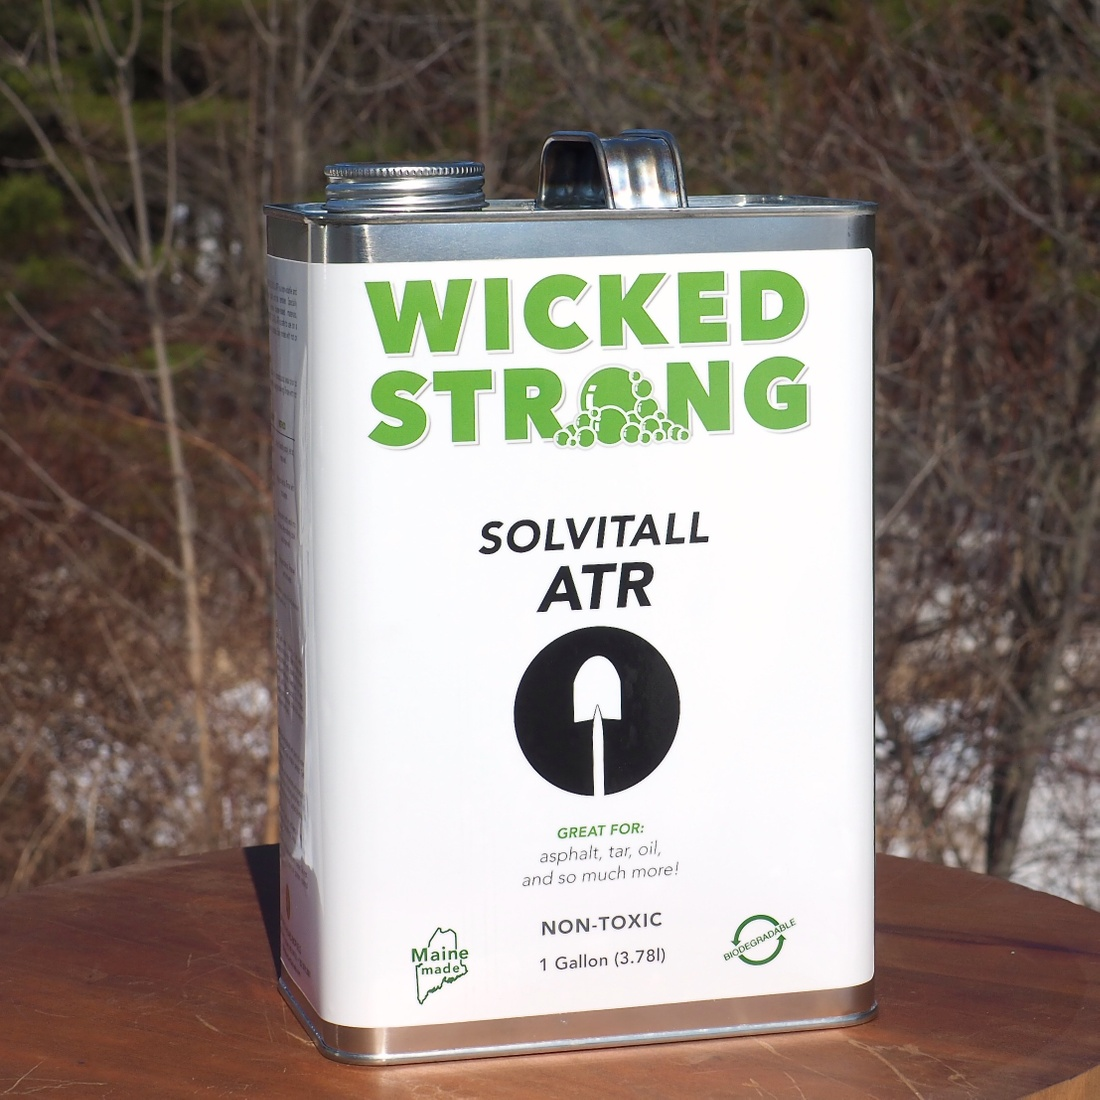 Wicked Strong Solvitall ATR